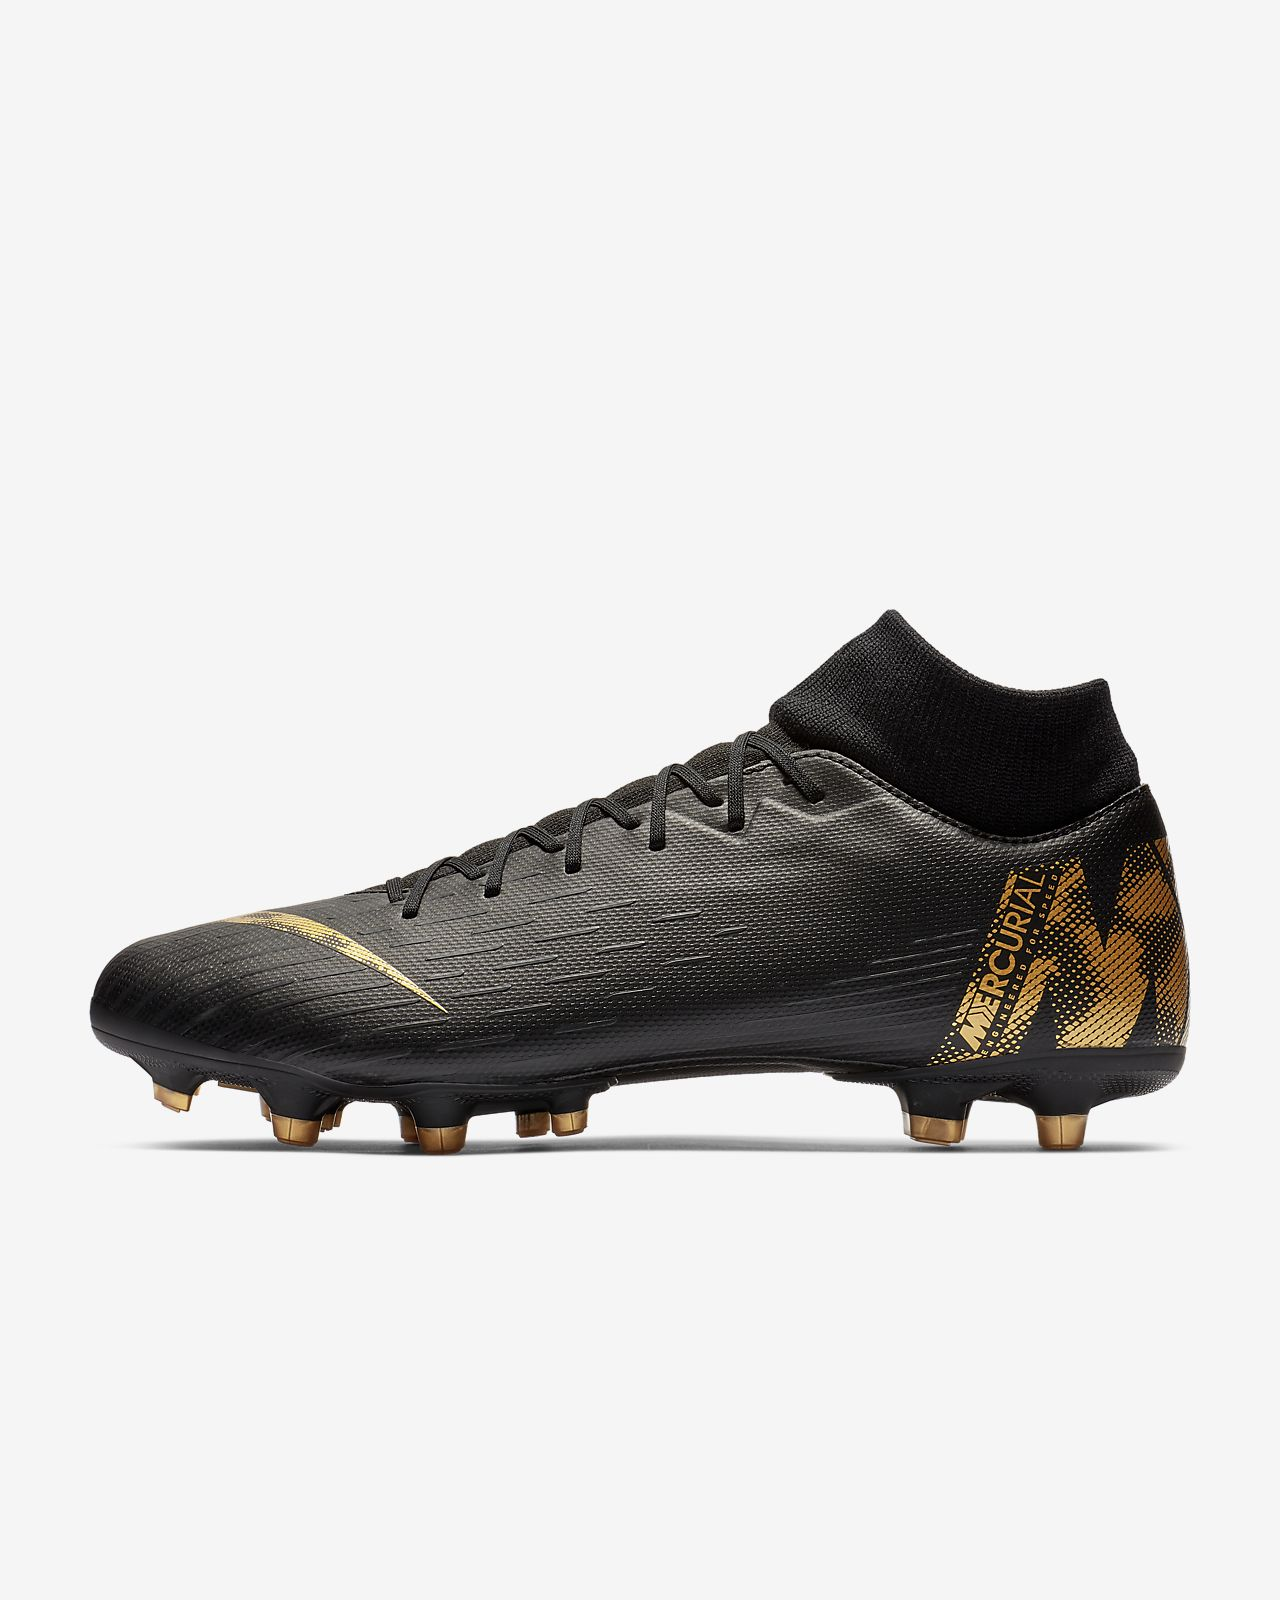 Nike Mercurial Superfly 6 Academy MG Multi-Ground Soccer Cleat. Nike.com 52cf9d61134a0